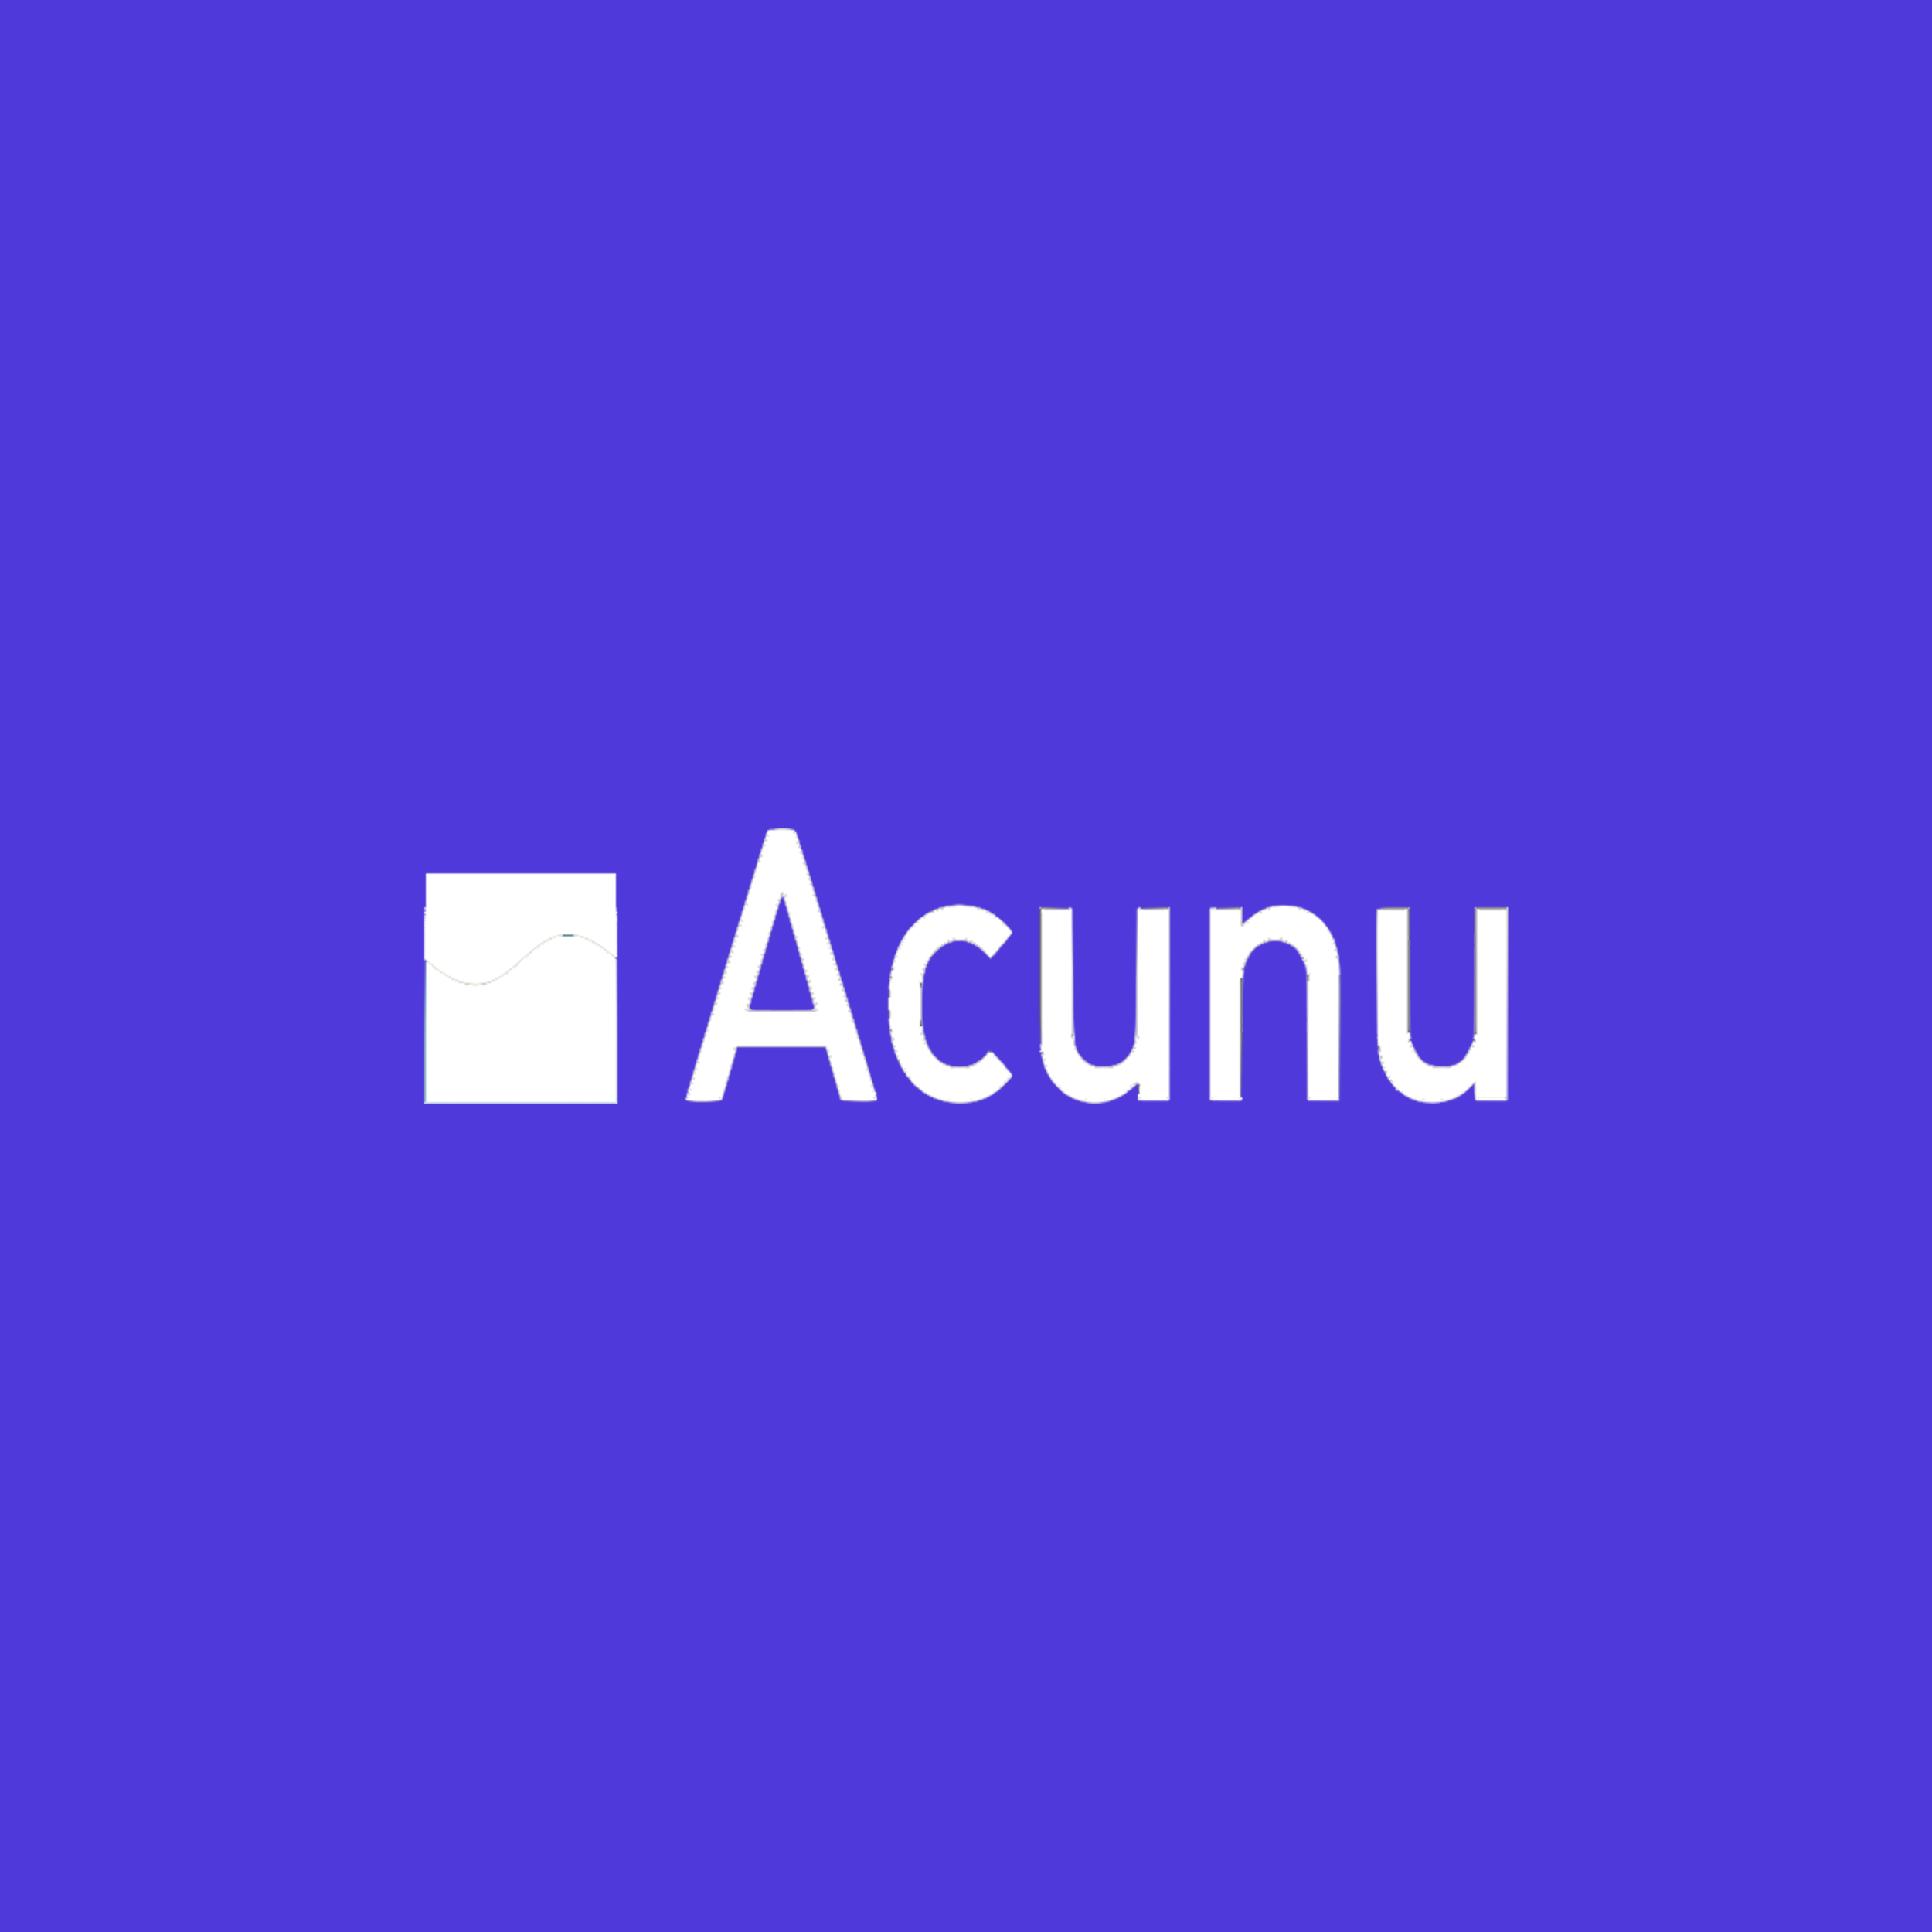 Acunu.png